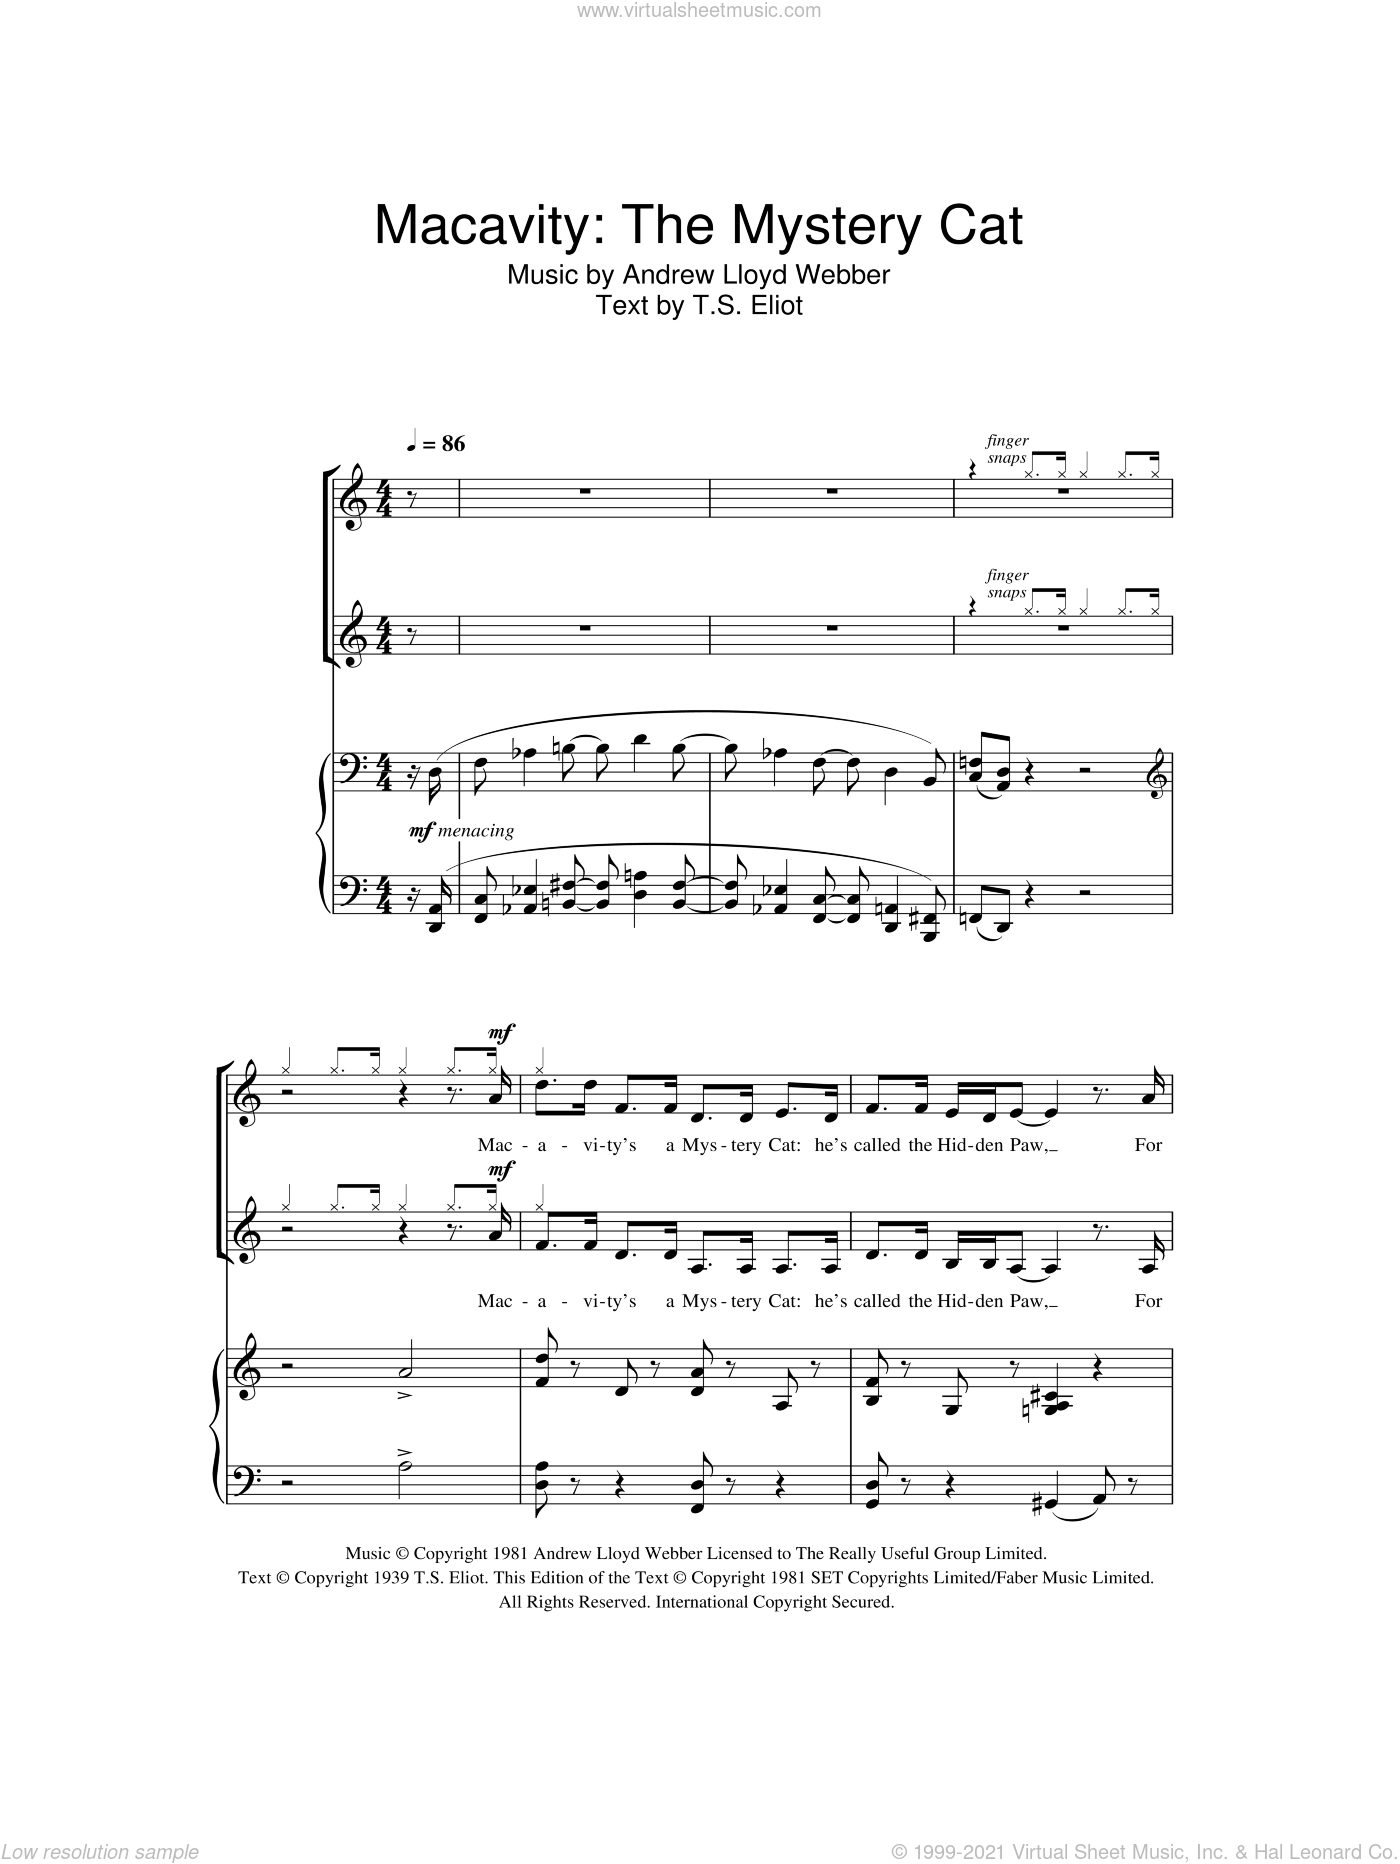 Macavity: The Mystery Cat (from Cats) sheet music for choir (2-Part) by Andrew Lloyd Webber and T.S. Eliot, intermediate duet